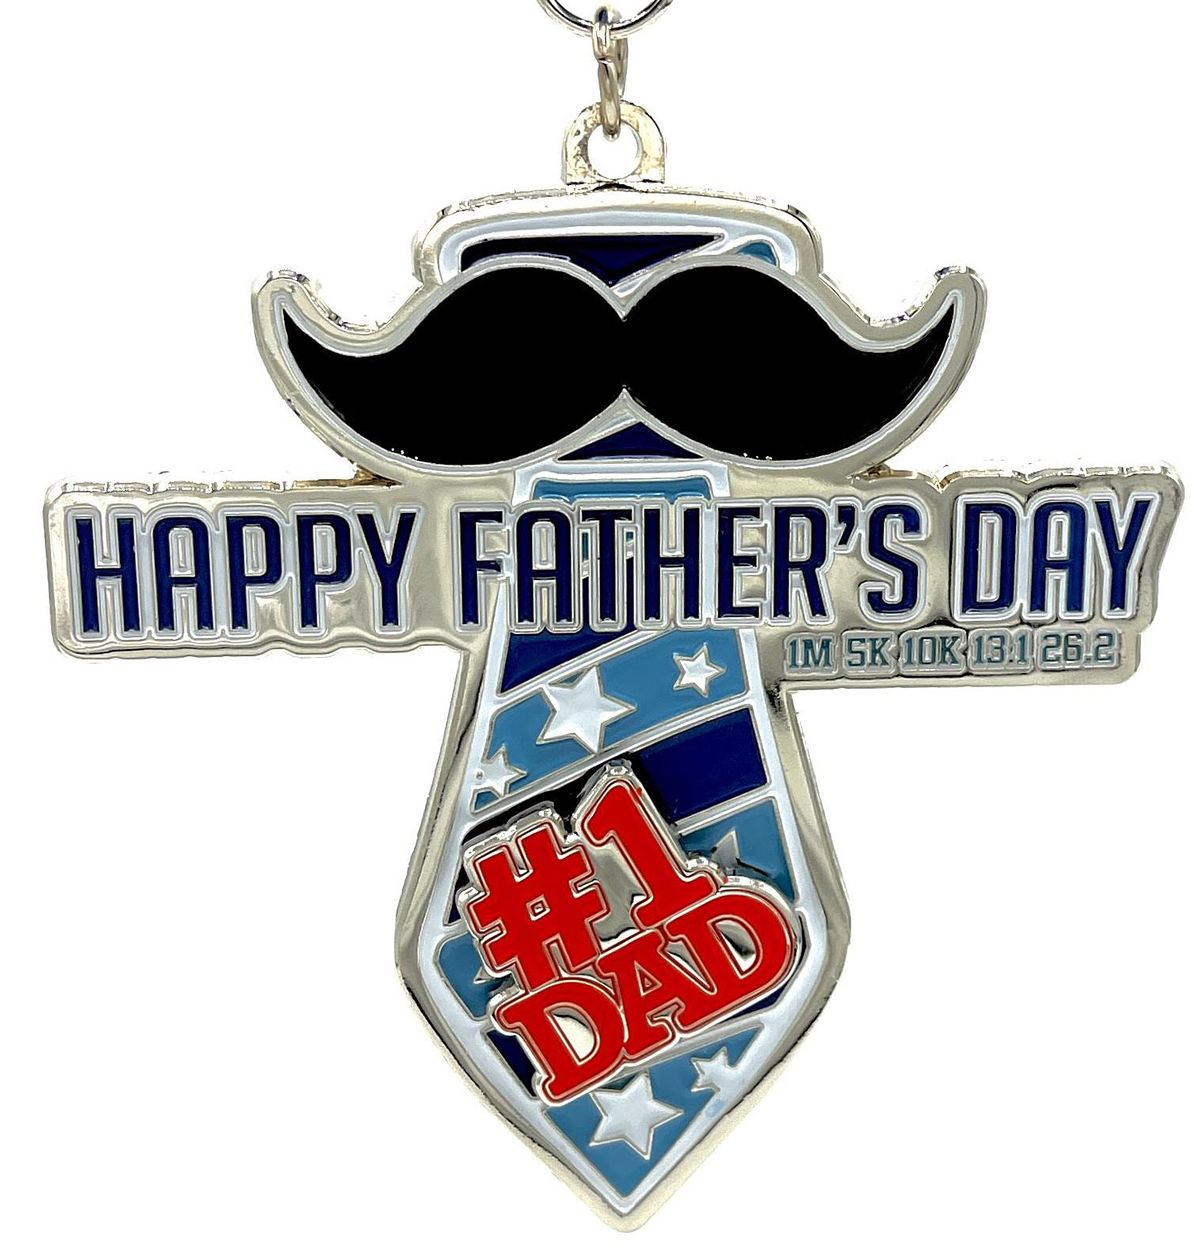 Father's Day 1M 5K 10K 13.1 26.2-Participate from Home. Save $10!   Event in Miami   AllEvents.in